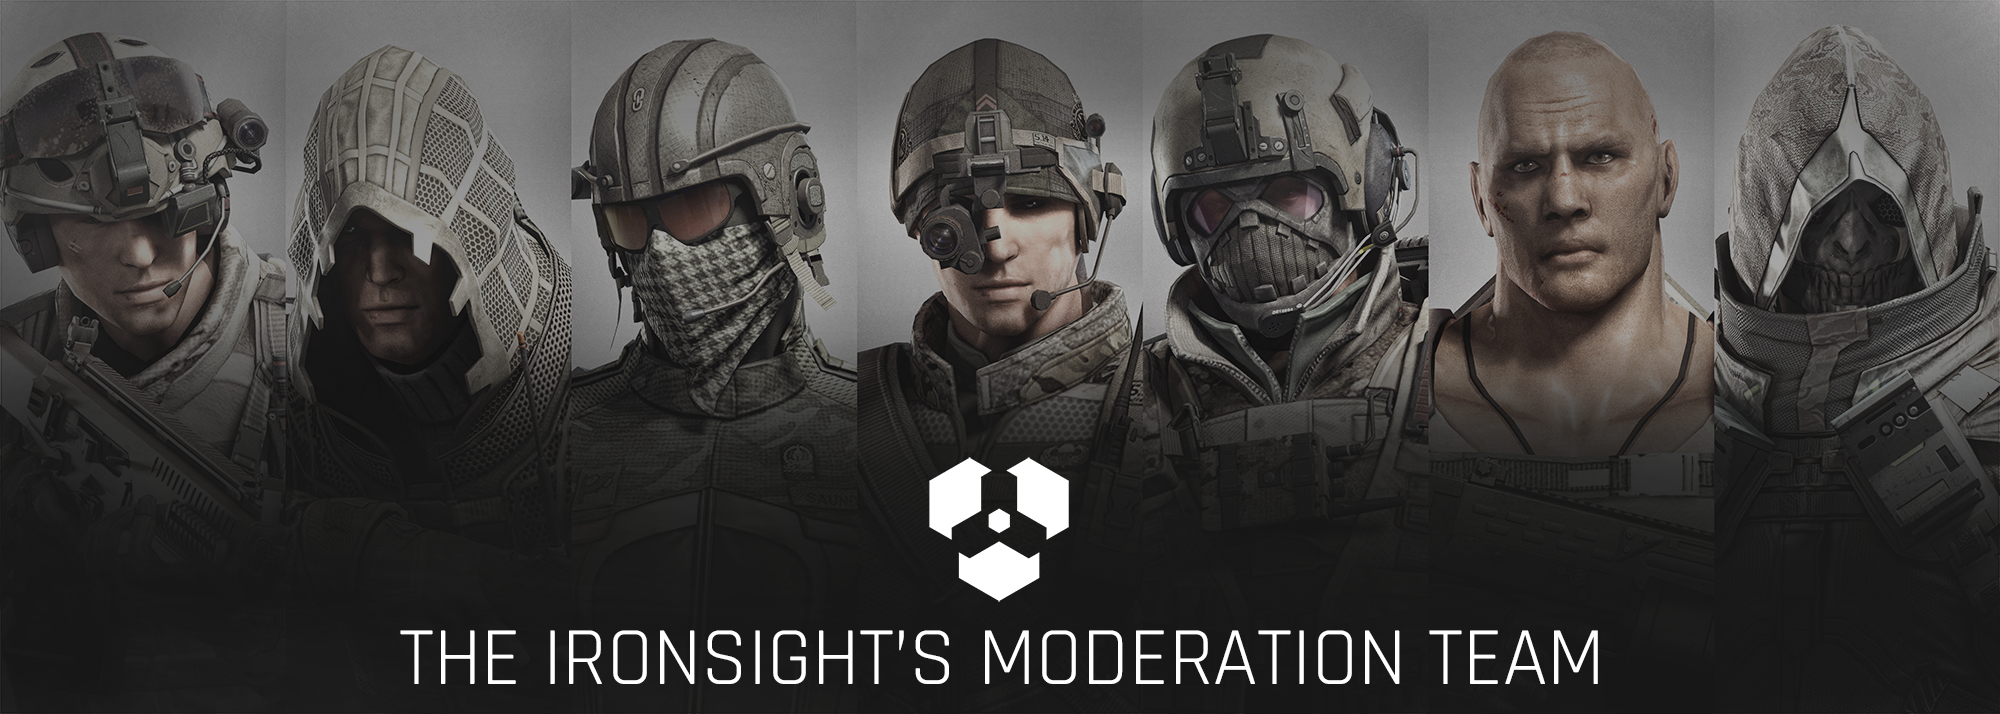 Moderation_team_banner_BIG.png